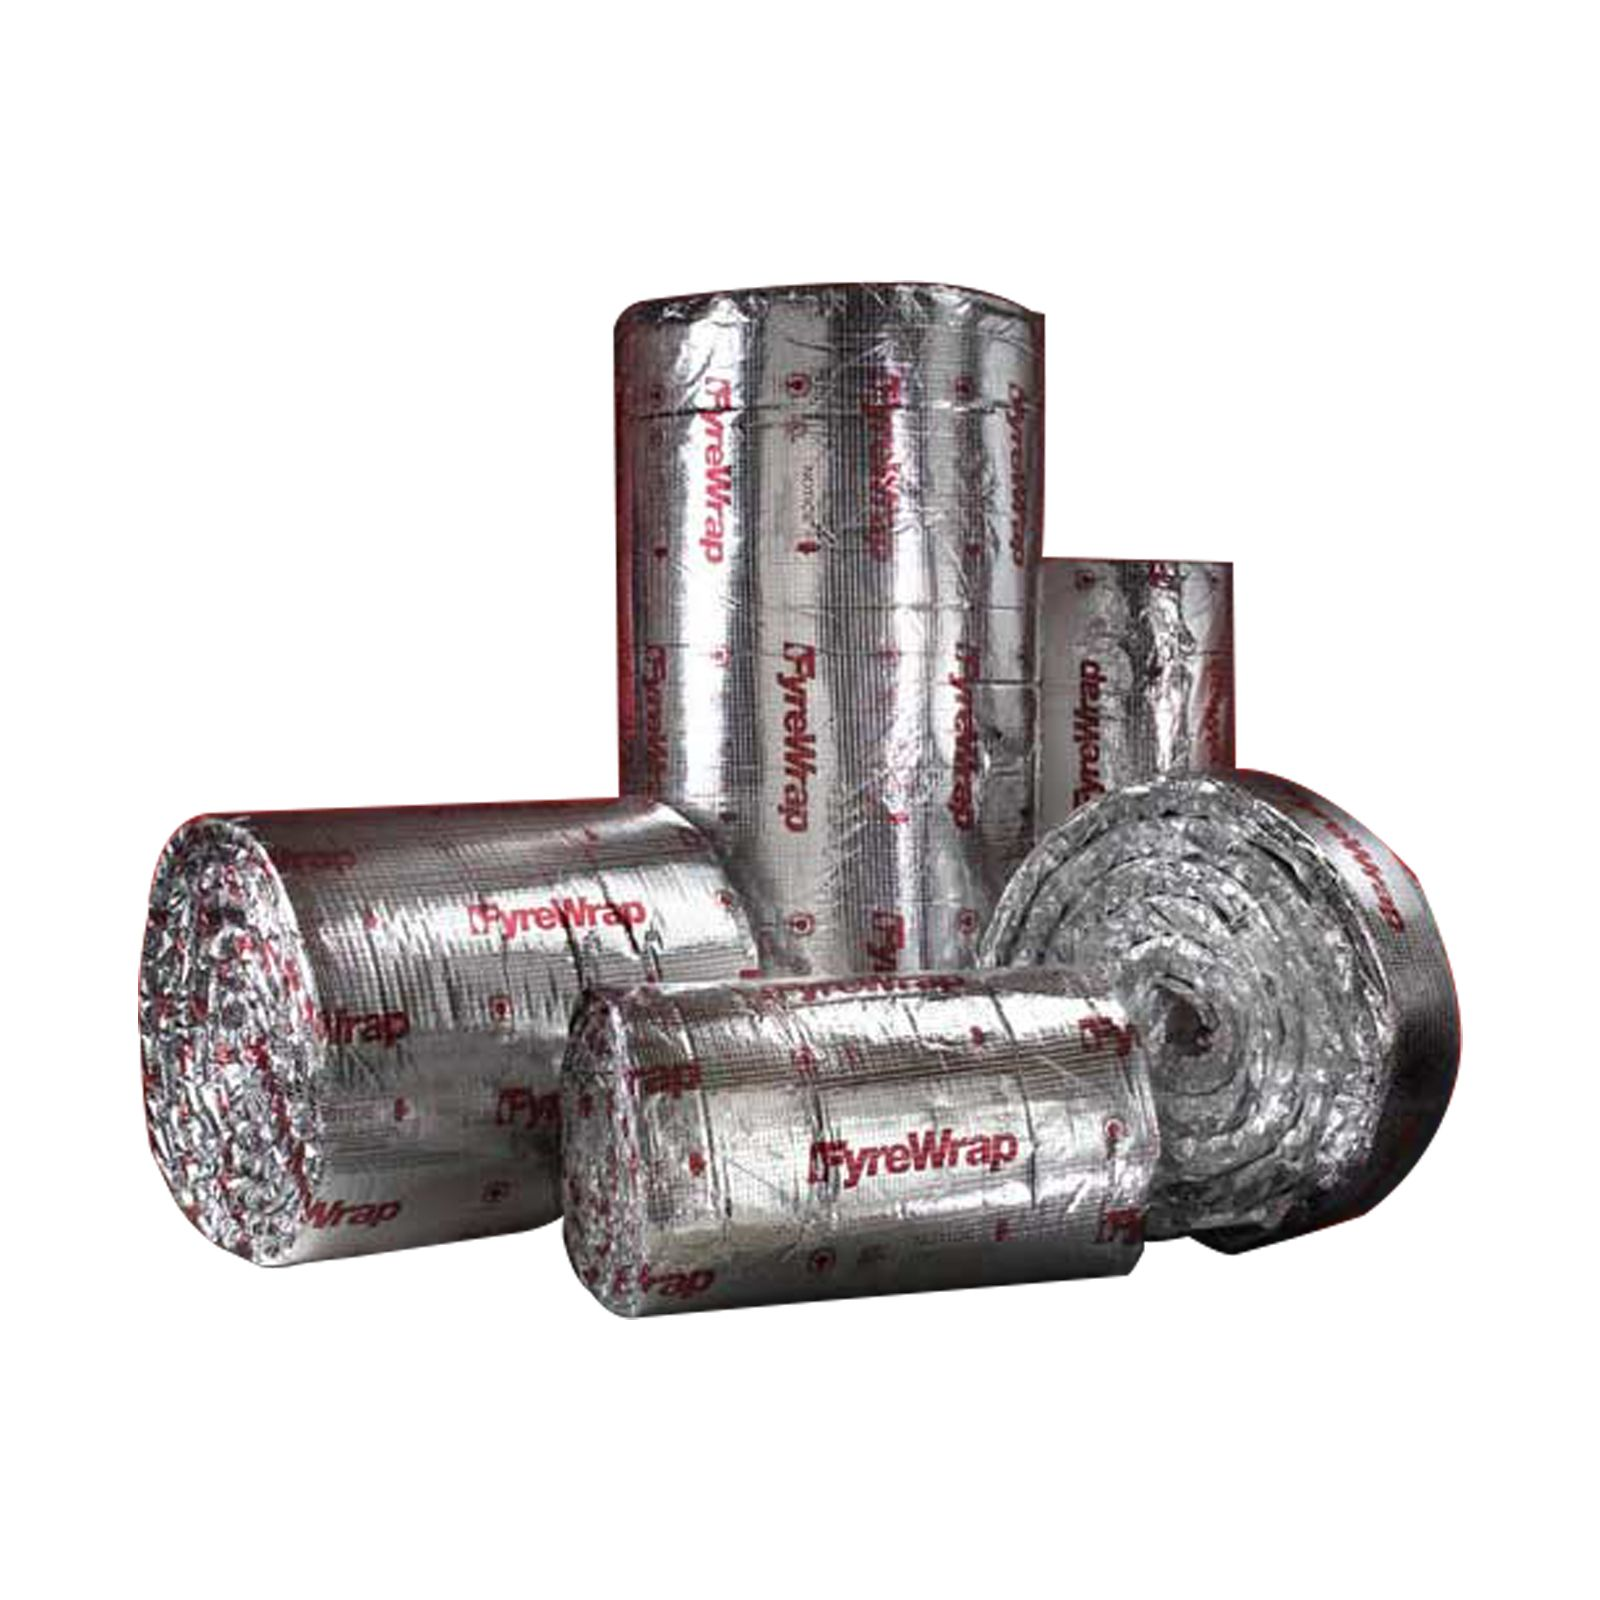 "Unifrax FW11224EZ -  Fyrewrap, 1-1/2"" X 24"" X 25' Grease Duct Wrap"